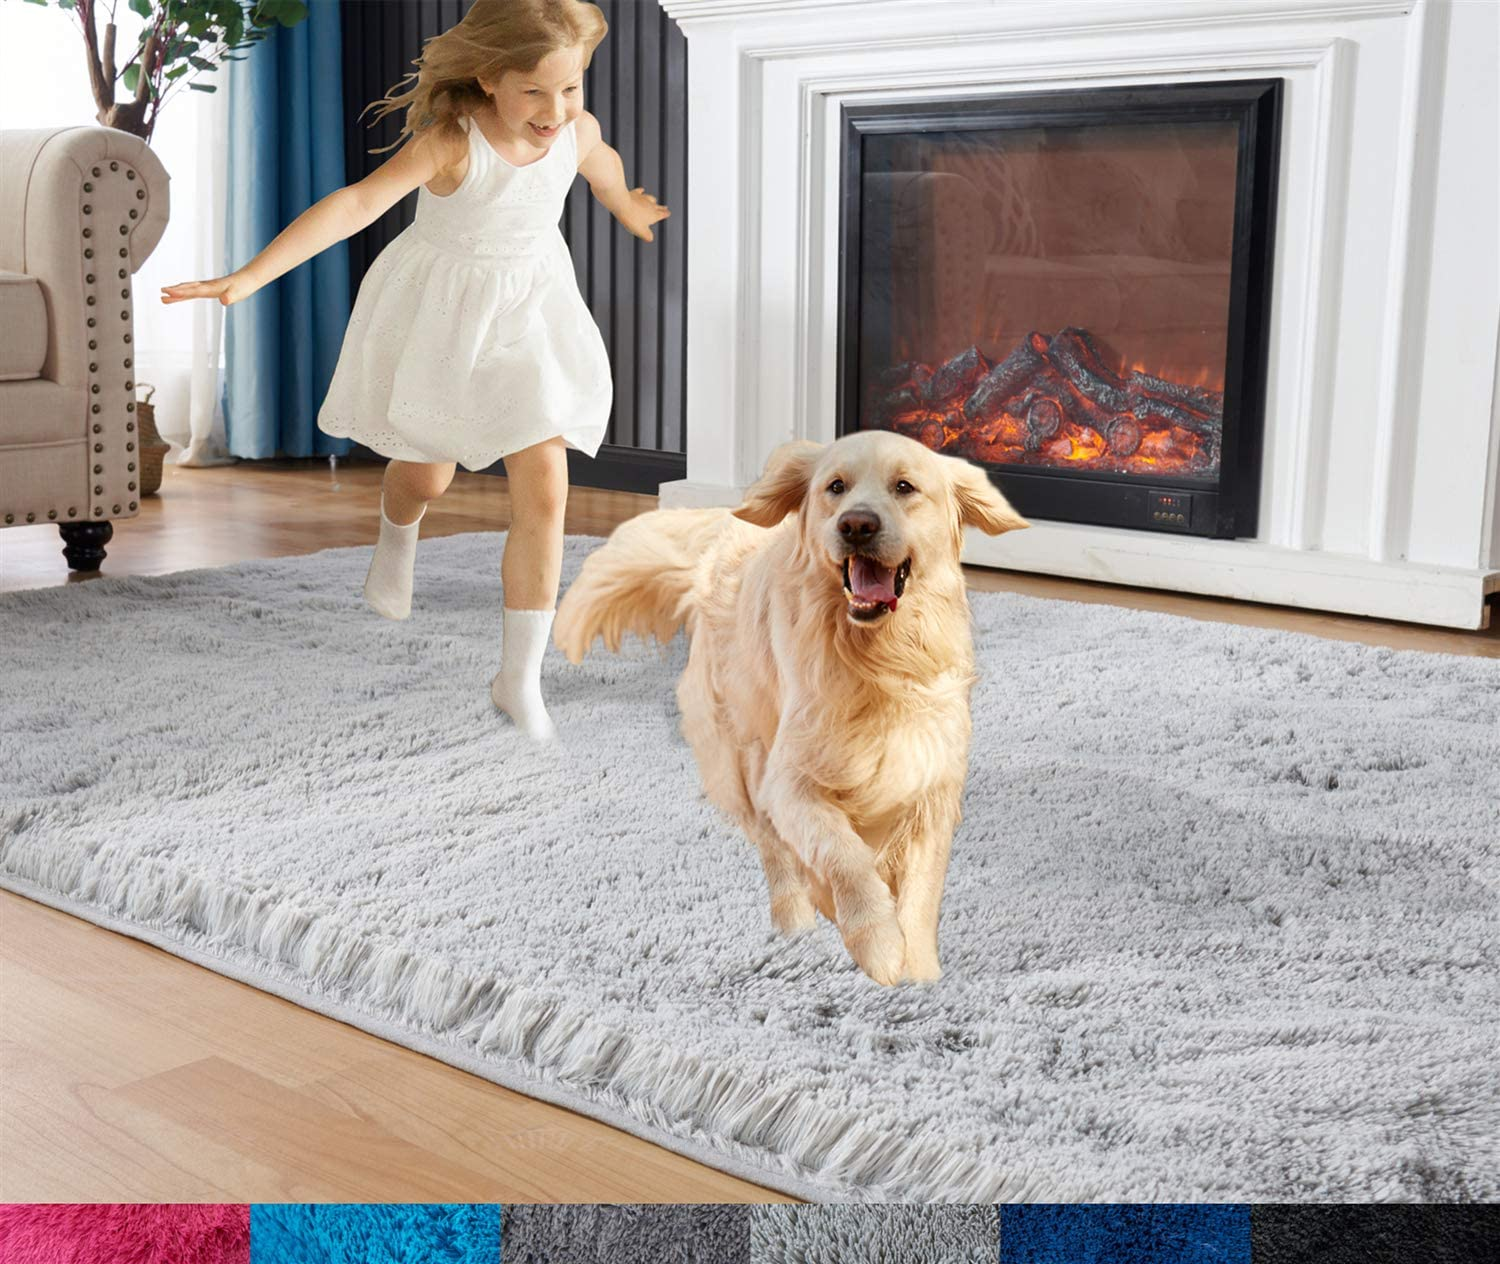 Rugs for Bedroom, Fluffy Area Rug, 3ft x 5ft Furry Carpet for Teens Room, Shaggy Throw Rug for Nursery Room, Fuzzy Plush Rug for Dorm, Cute Room Decor for Girls Boys Room, Light Gray